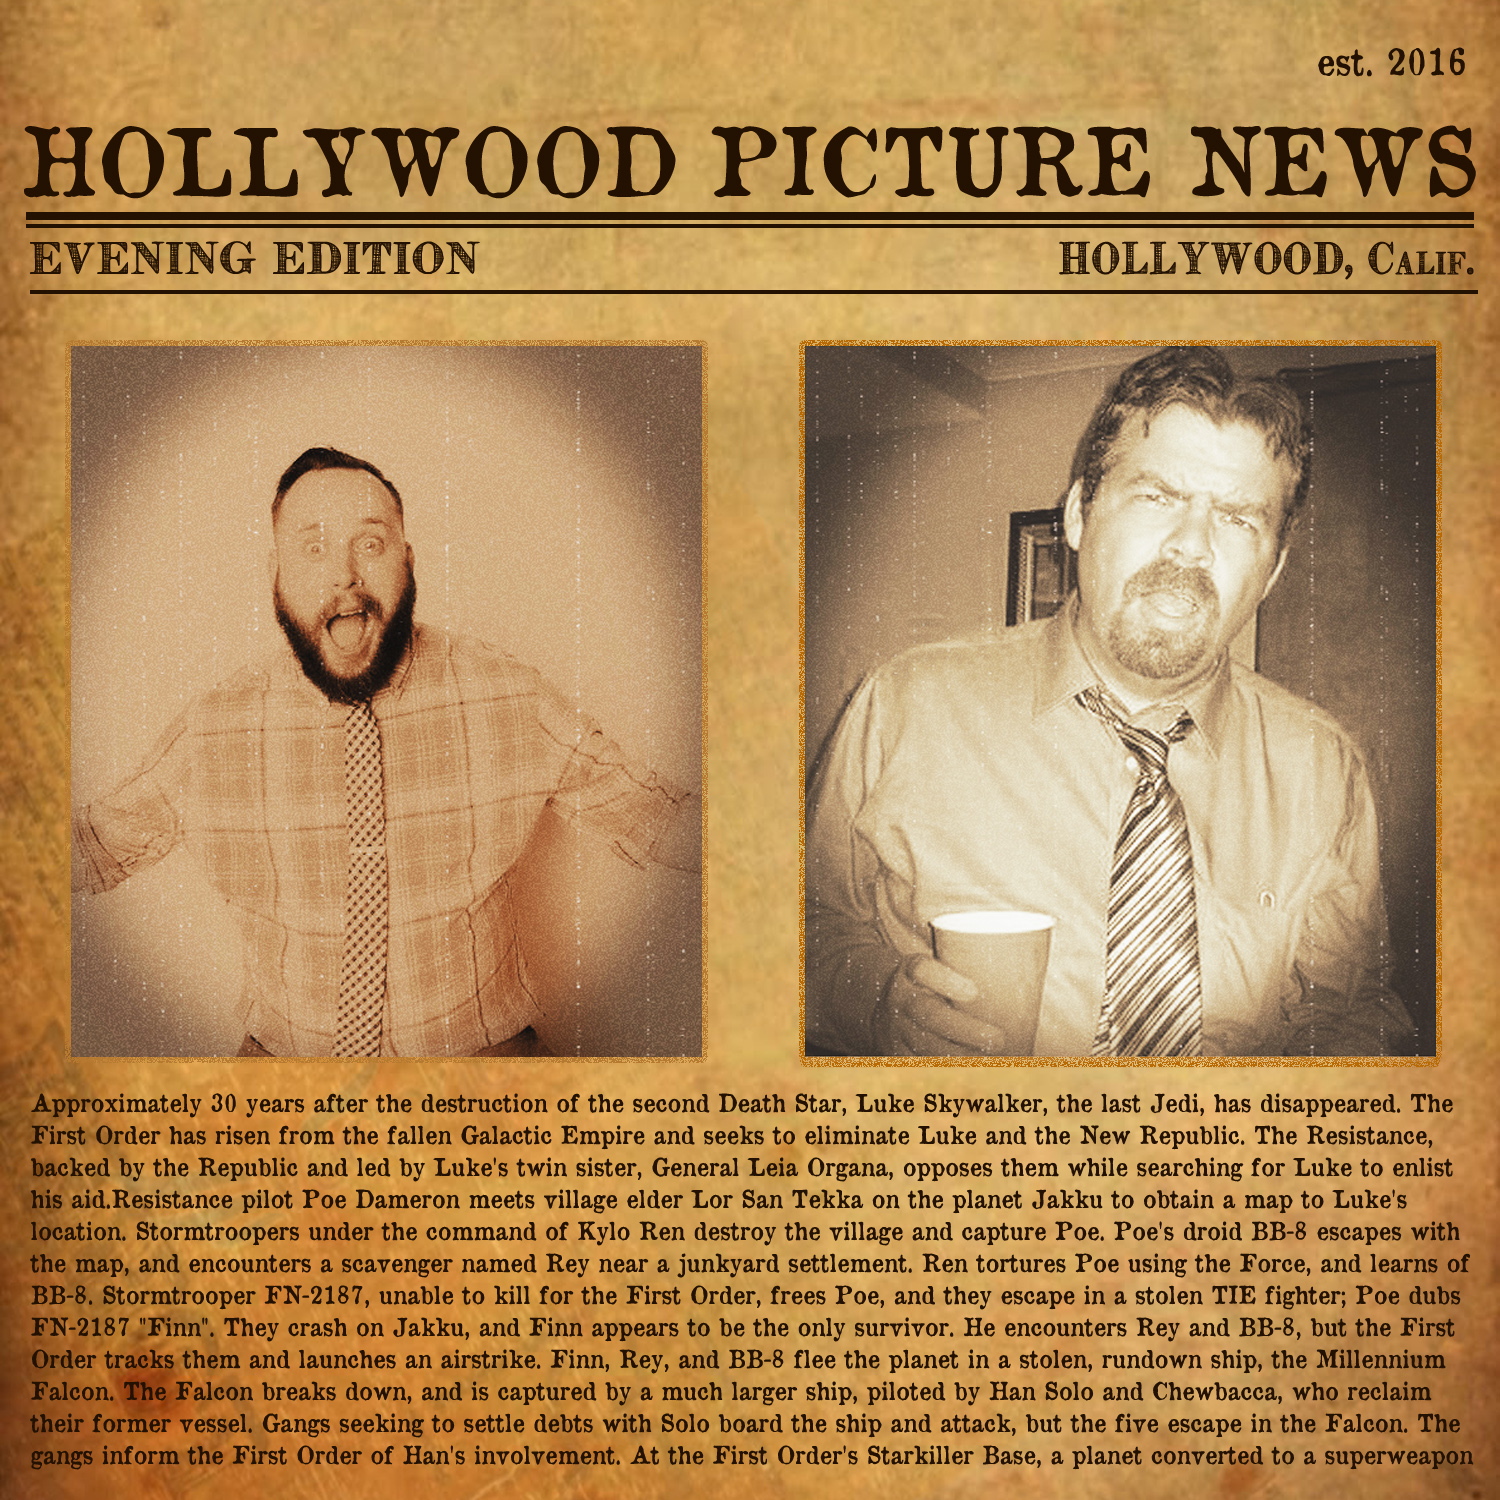 Hollywood Picture News